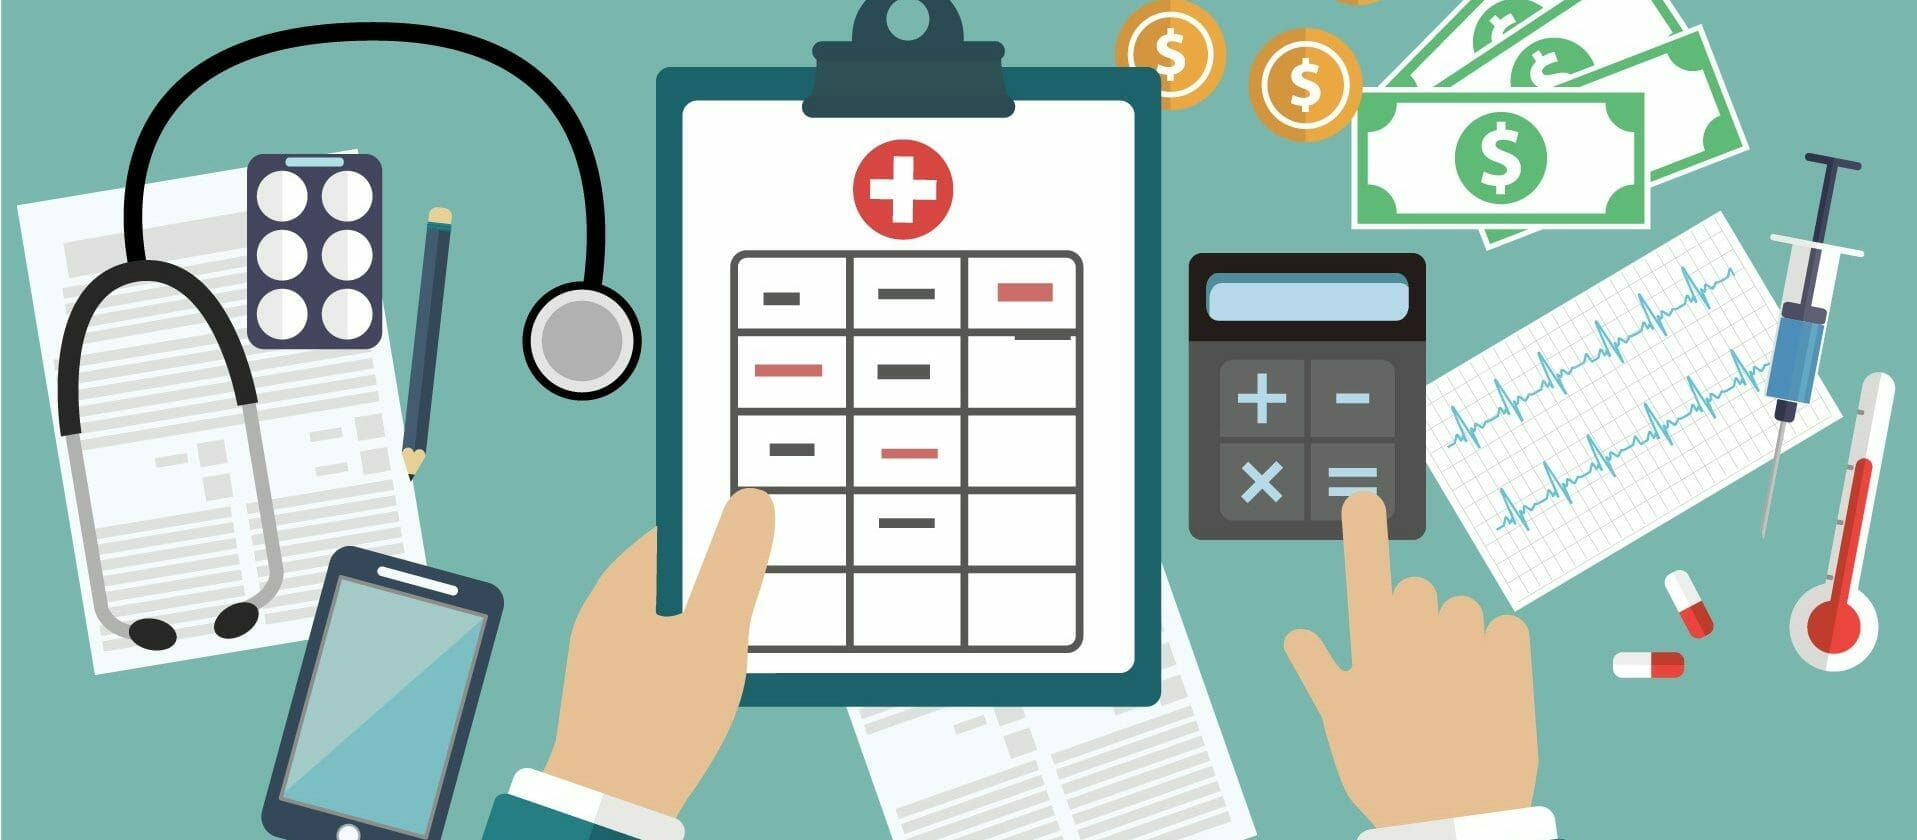 Calculating medical expenses